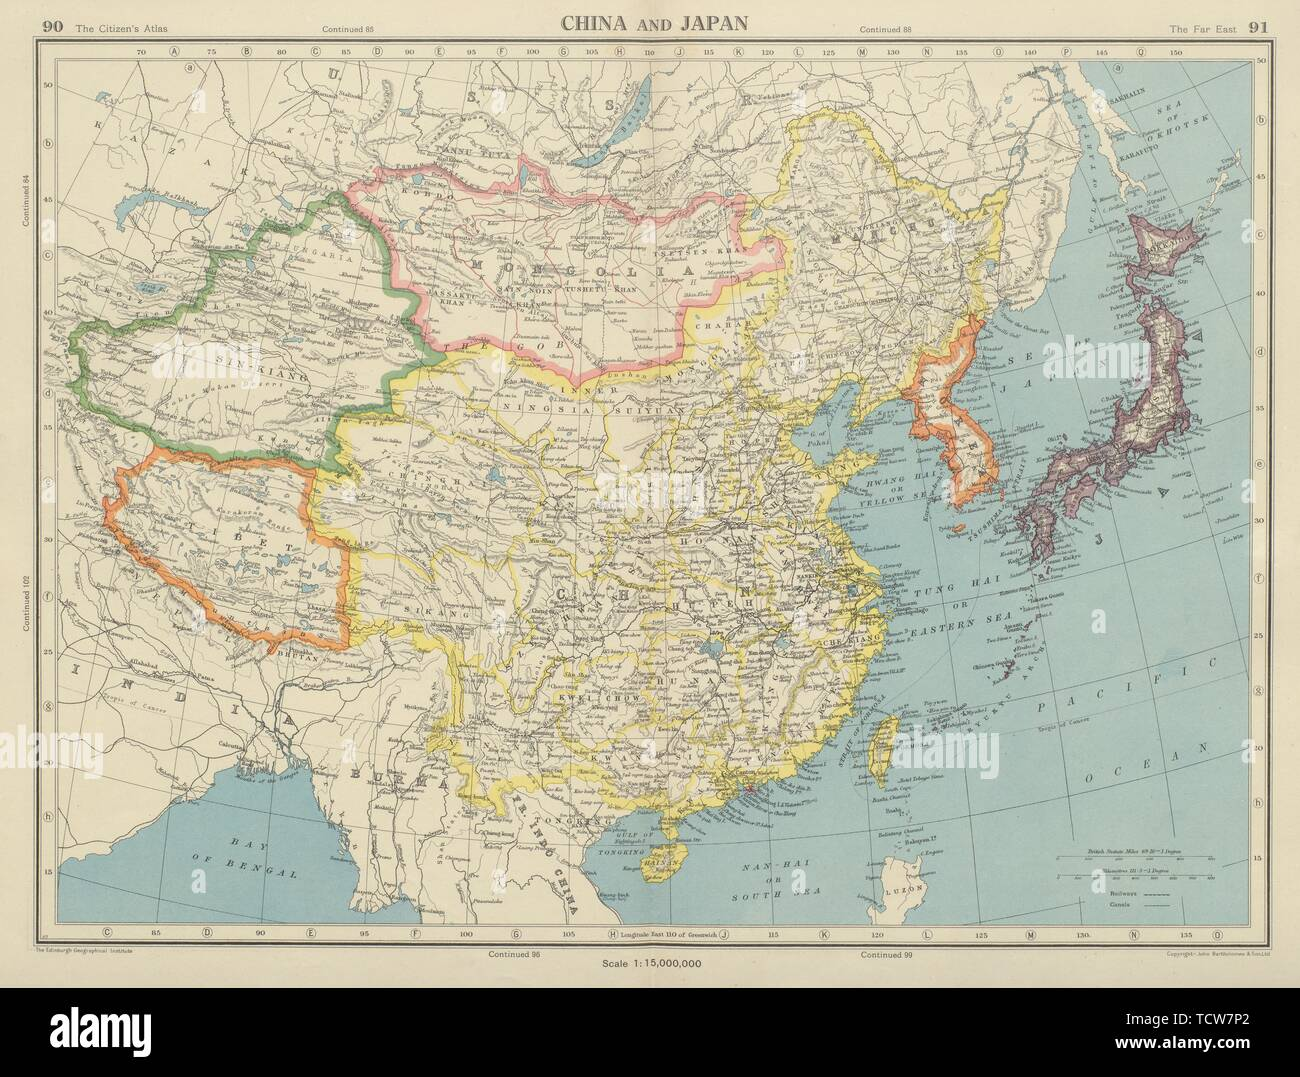 Map Xinjiang.Xinjiang China Asia Map Stock Photos Xinjiang China Asia Map Stock